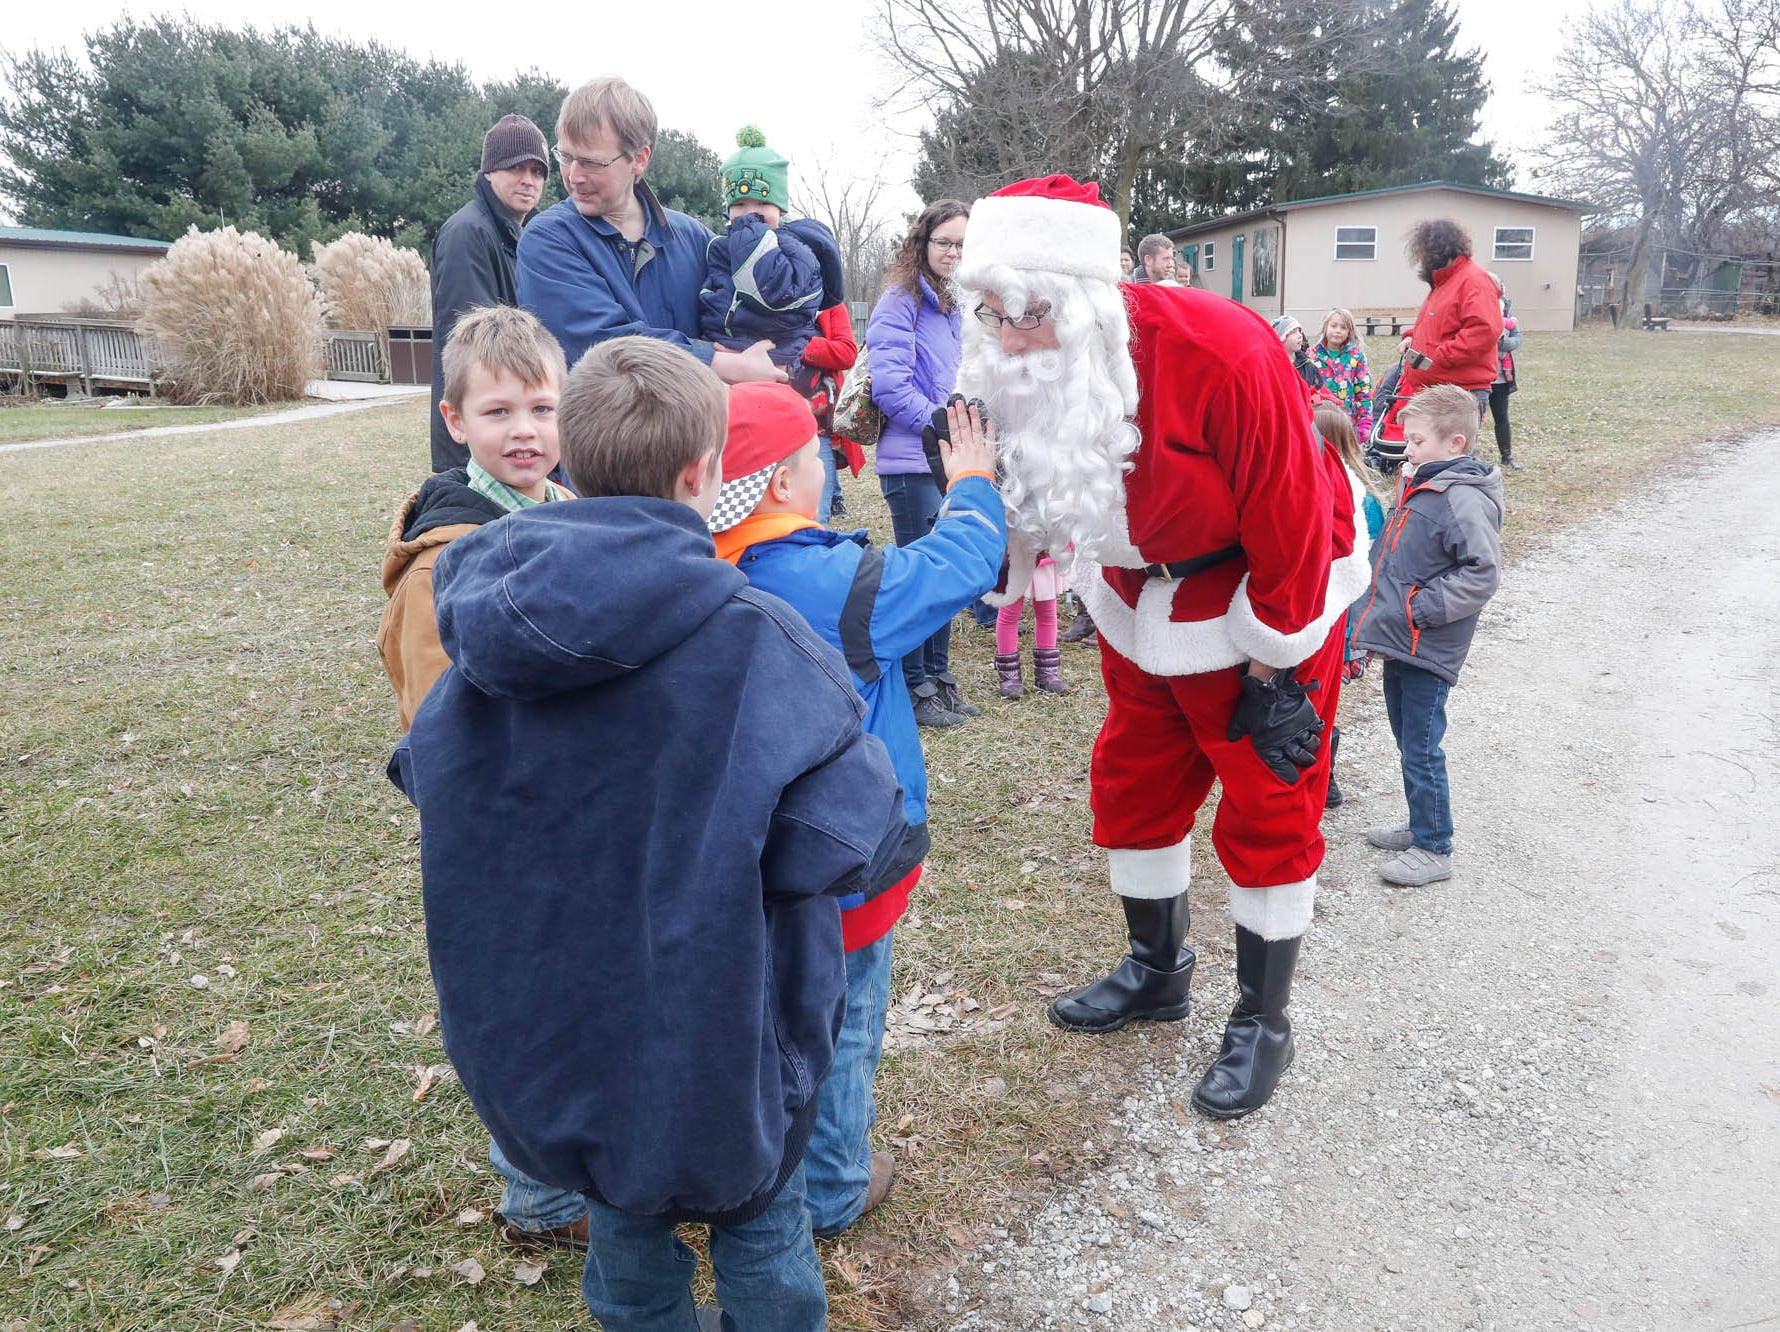 Santa high fives a little guest during his visit to Wolf Park in Battle Ground Indiana on Saturday, Dec. 15, 2018.